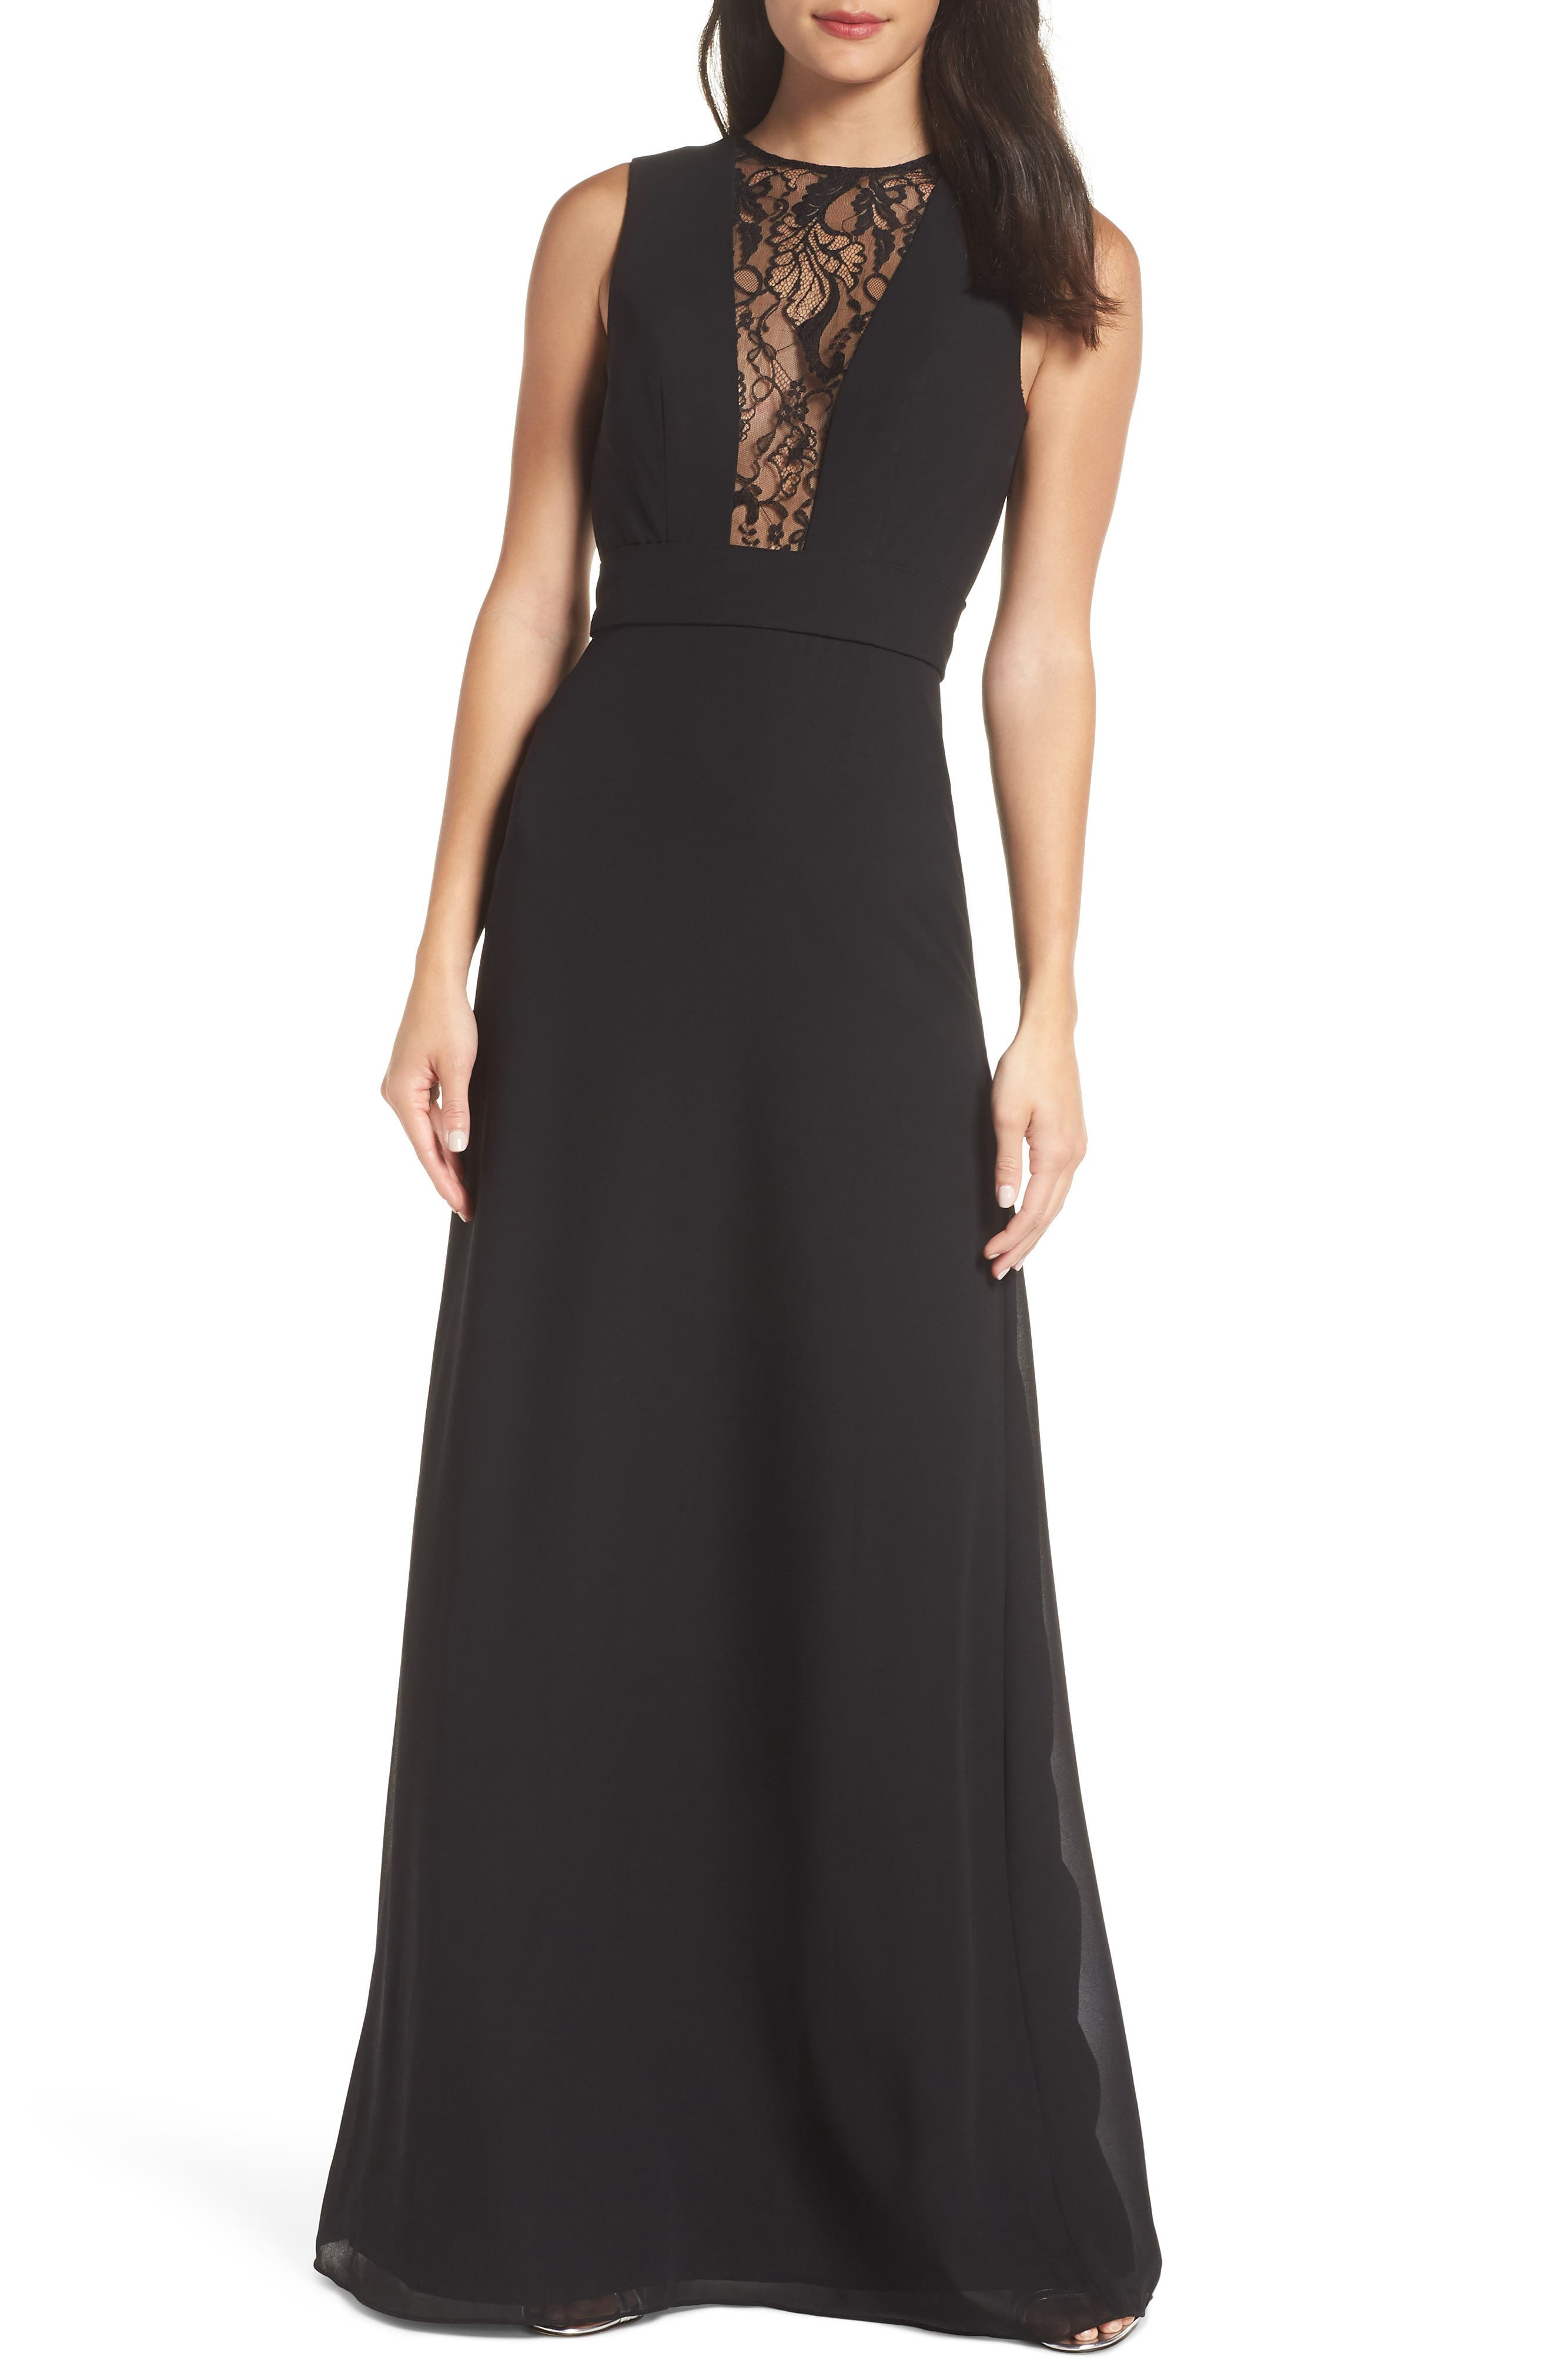 Hayley Paige Occasions Lace Inset Chiffon Gown, Black